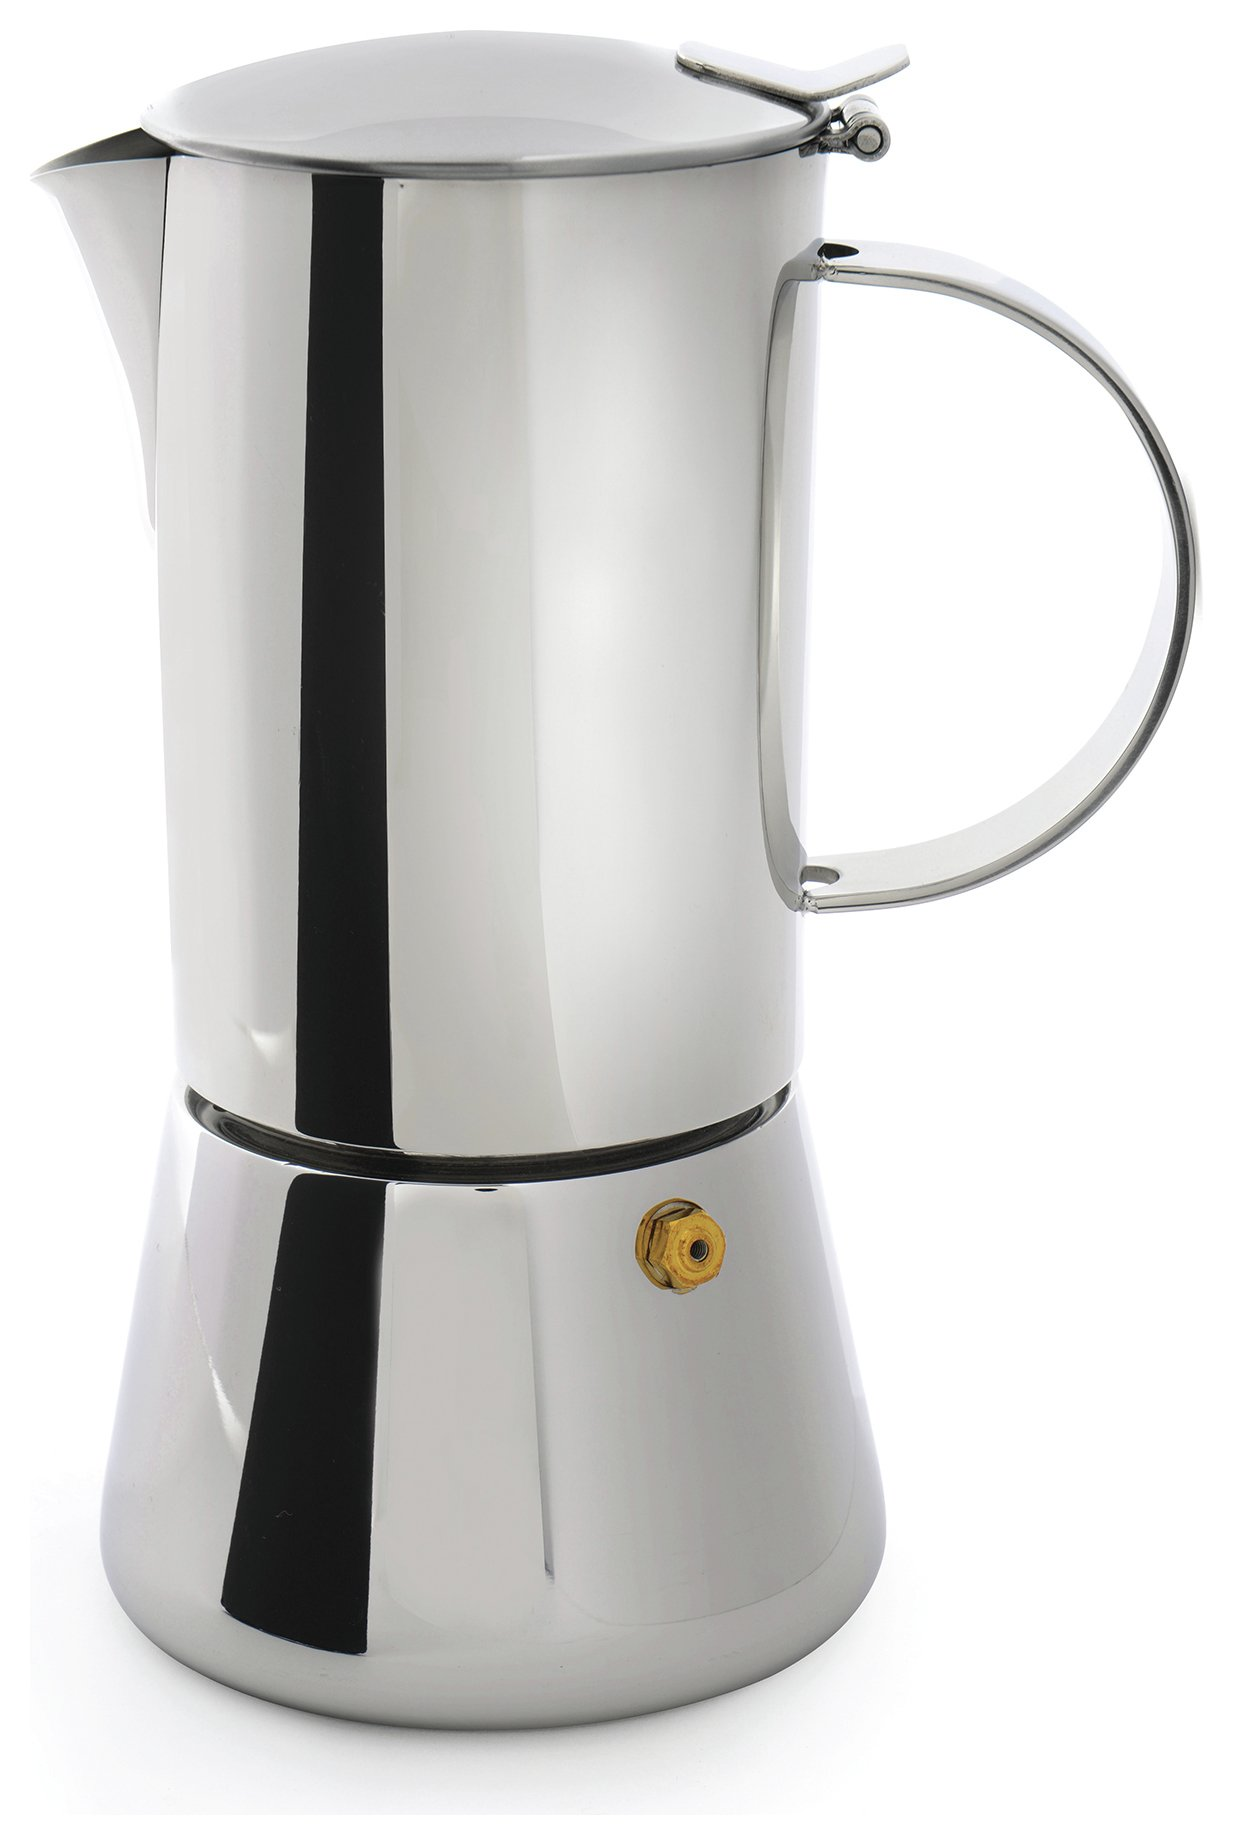 Image of BergHOFF Studio 4 Cup Espresso Coffee Maker